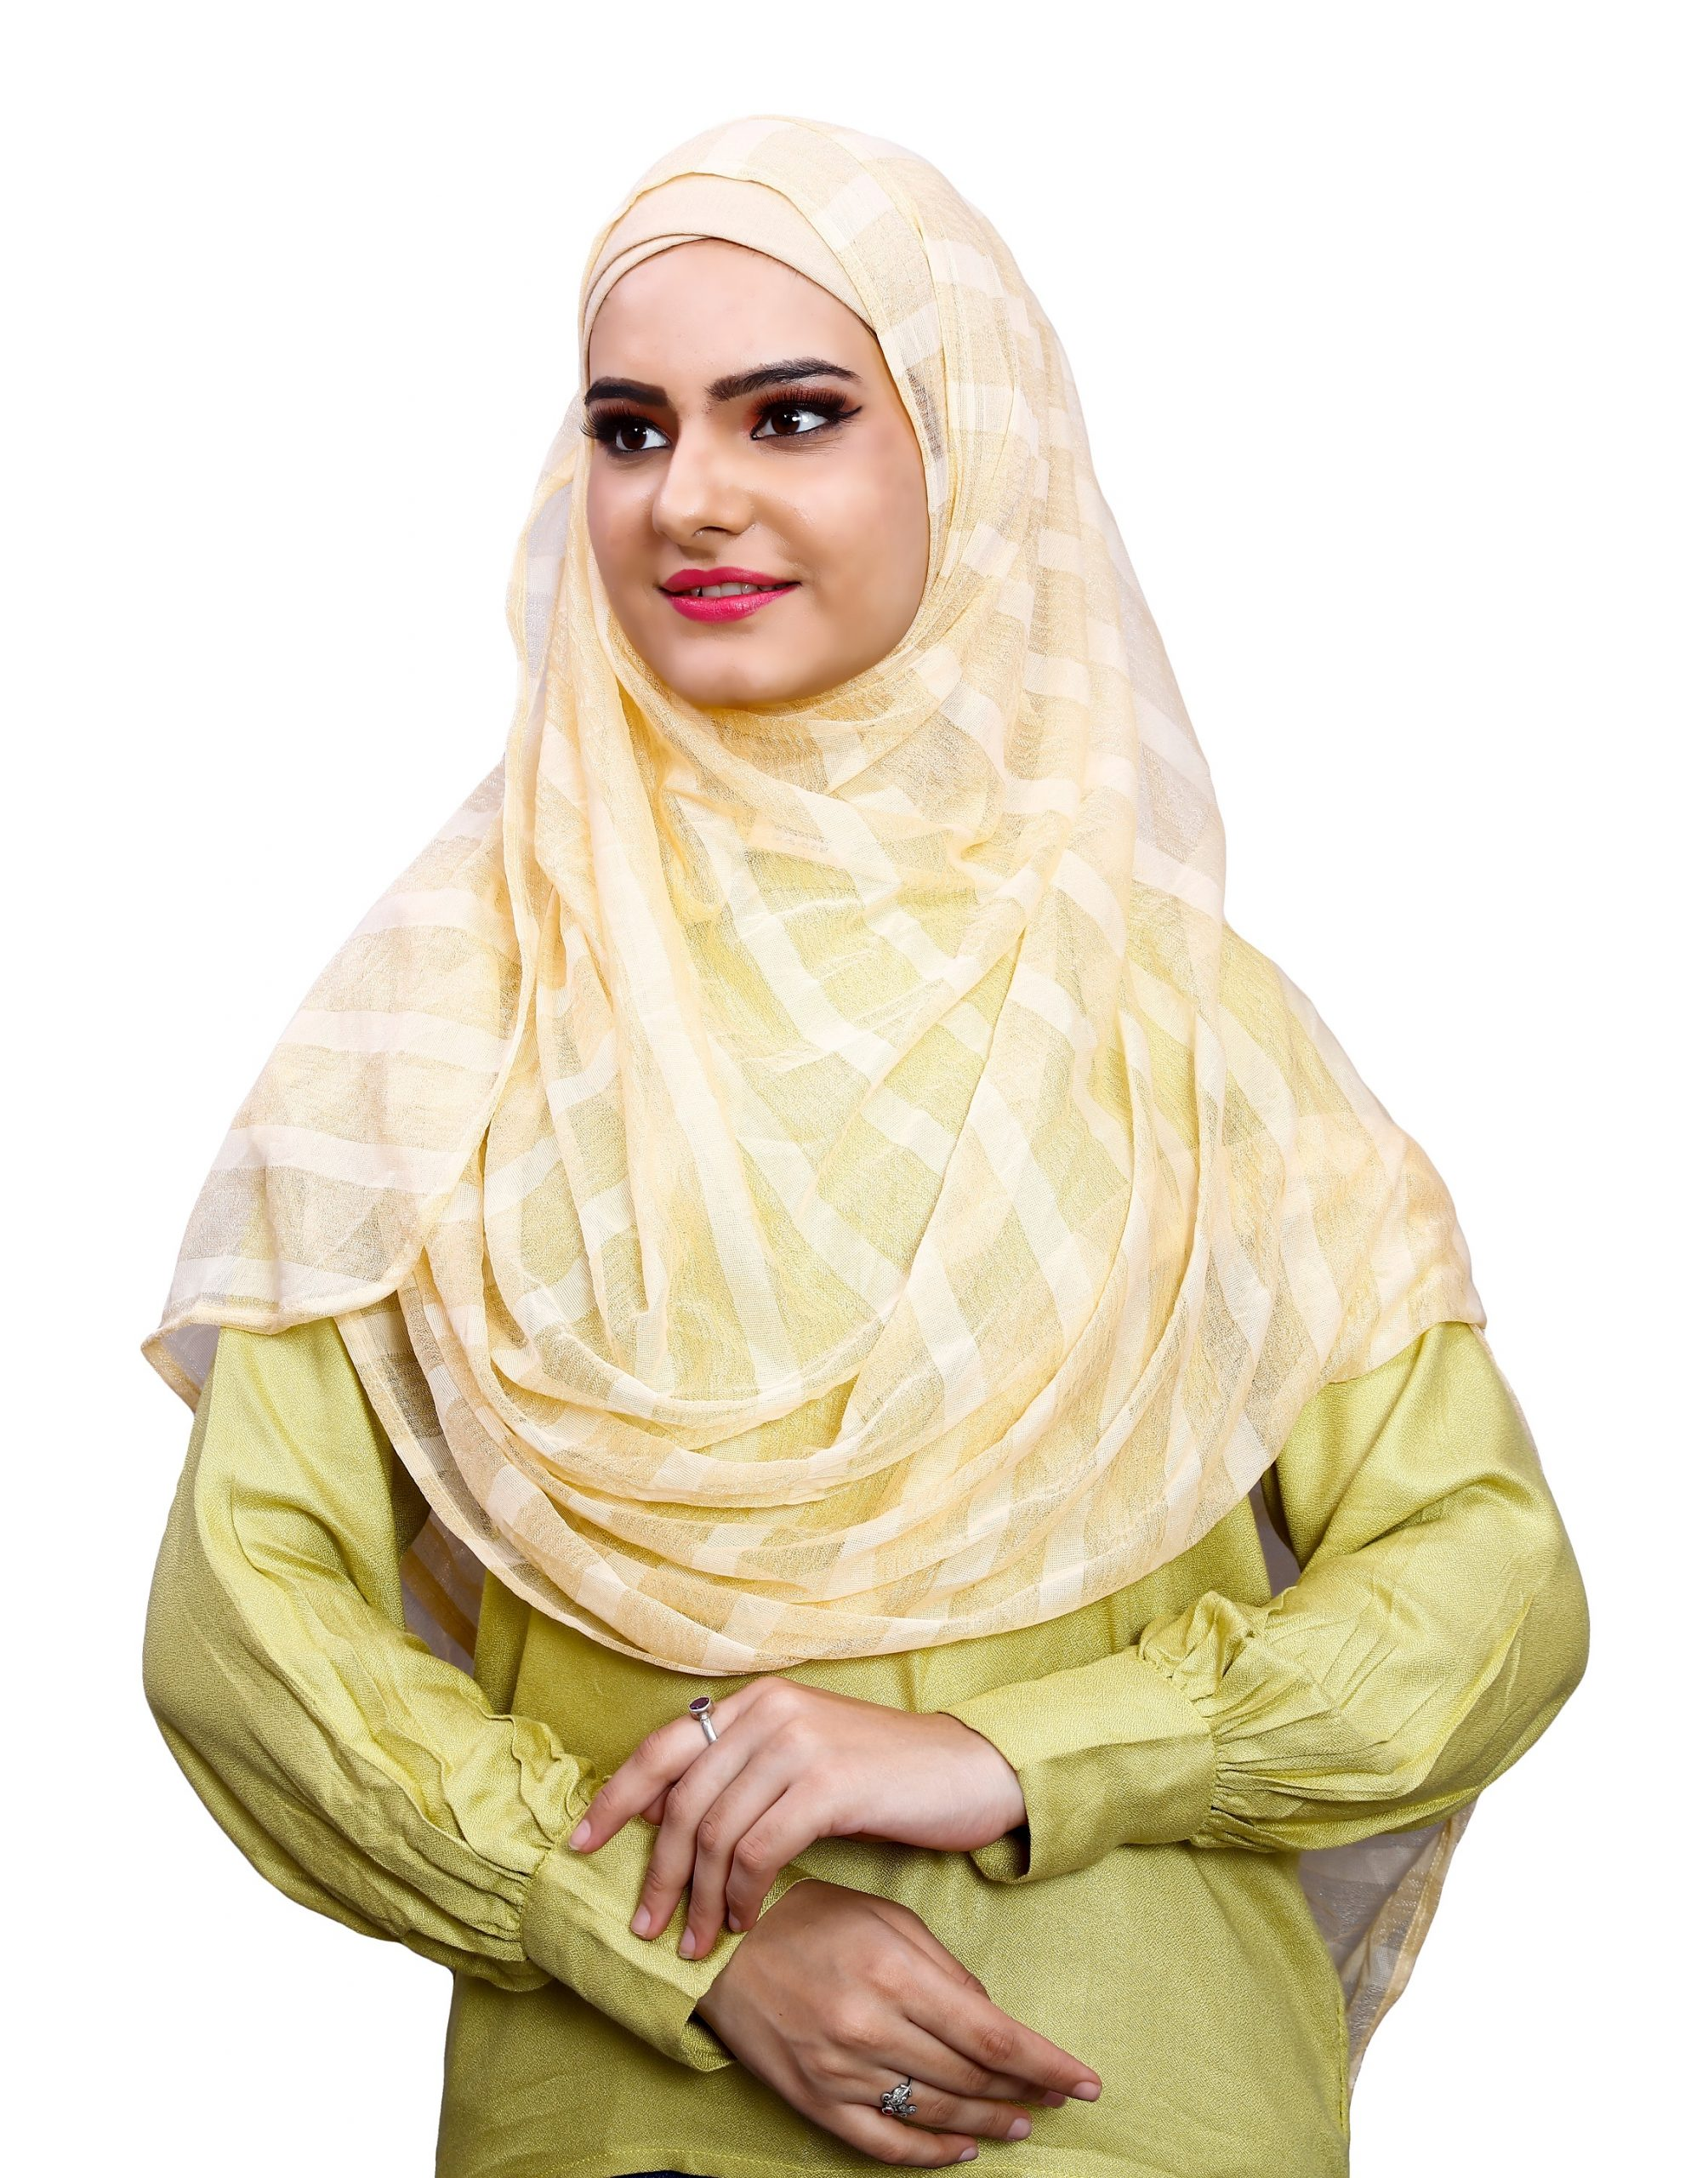 Daily Wear Beige Color Instant Hijab Scarf For Women (To